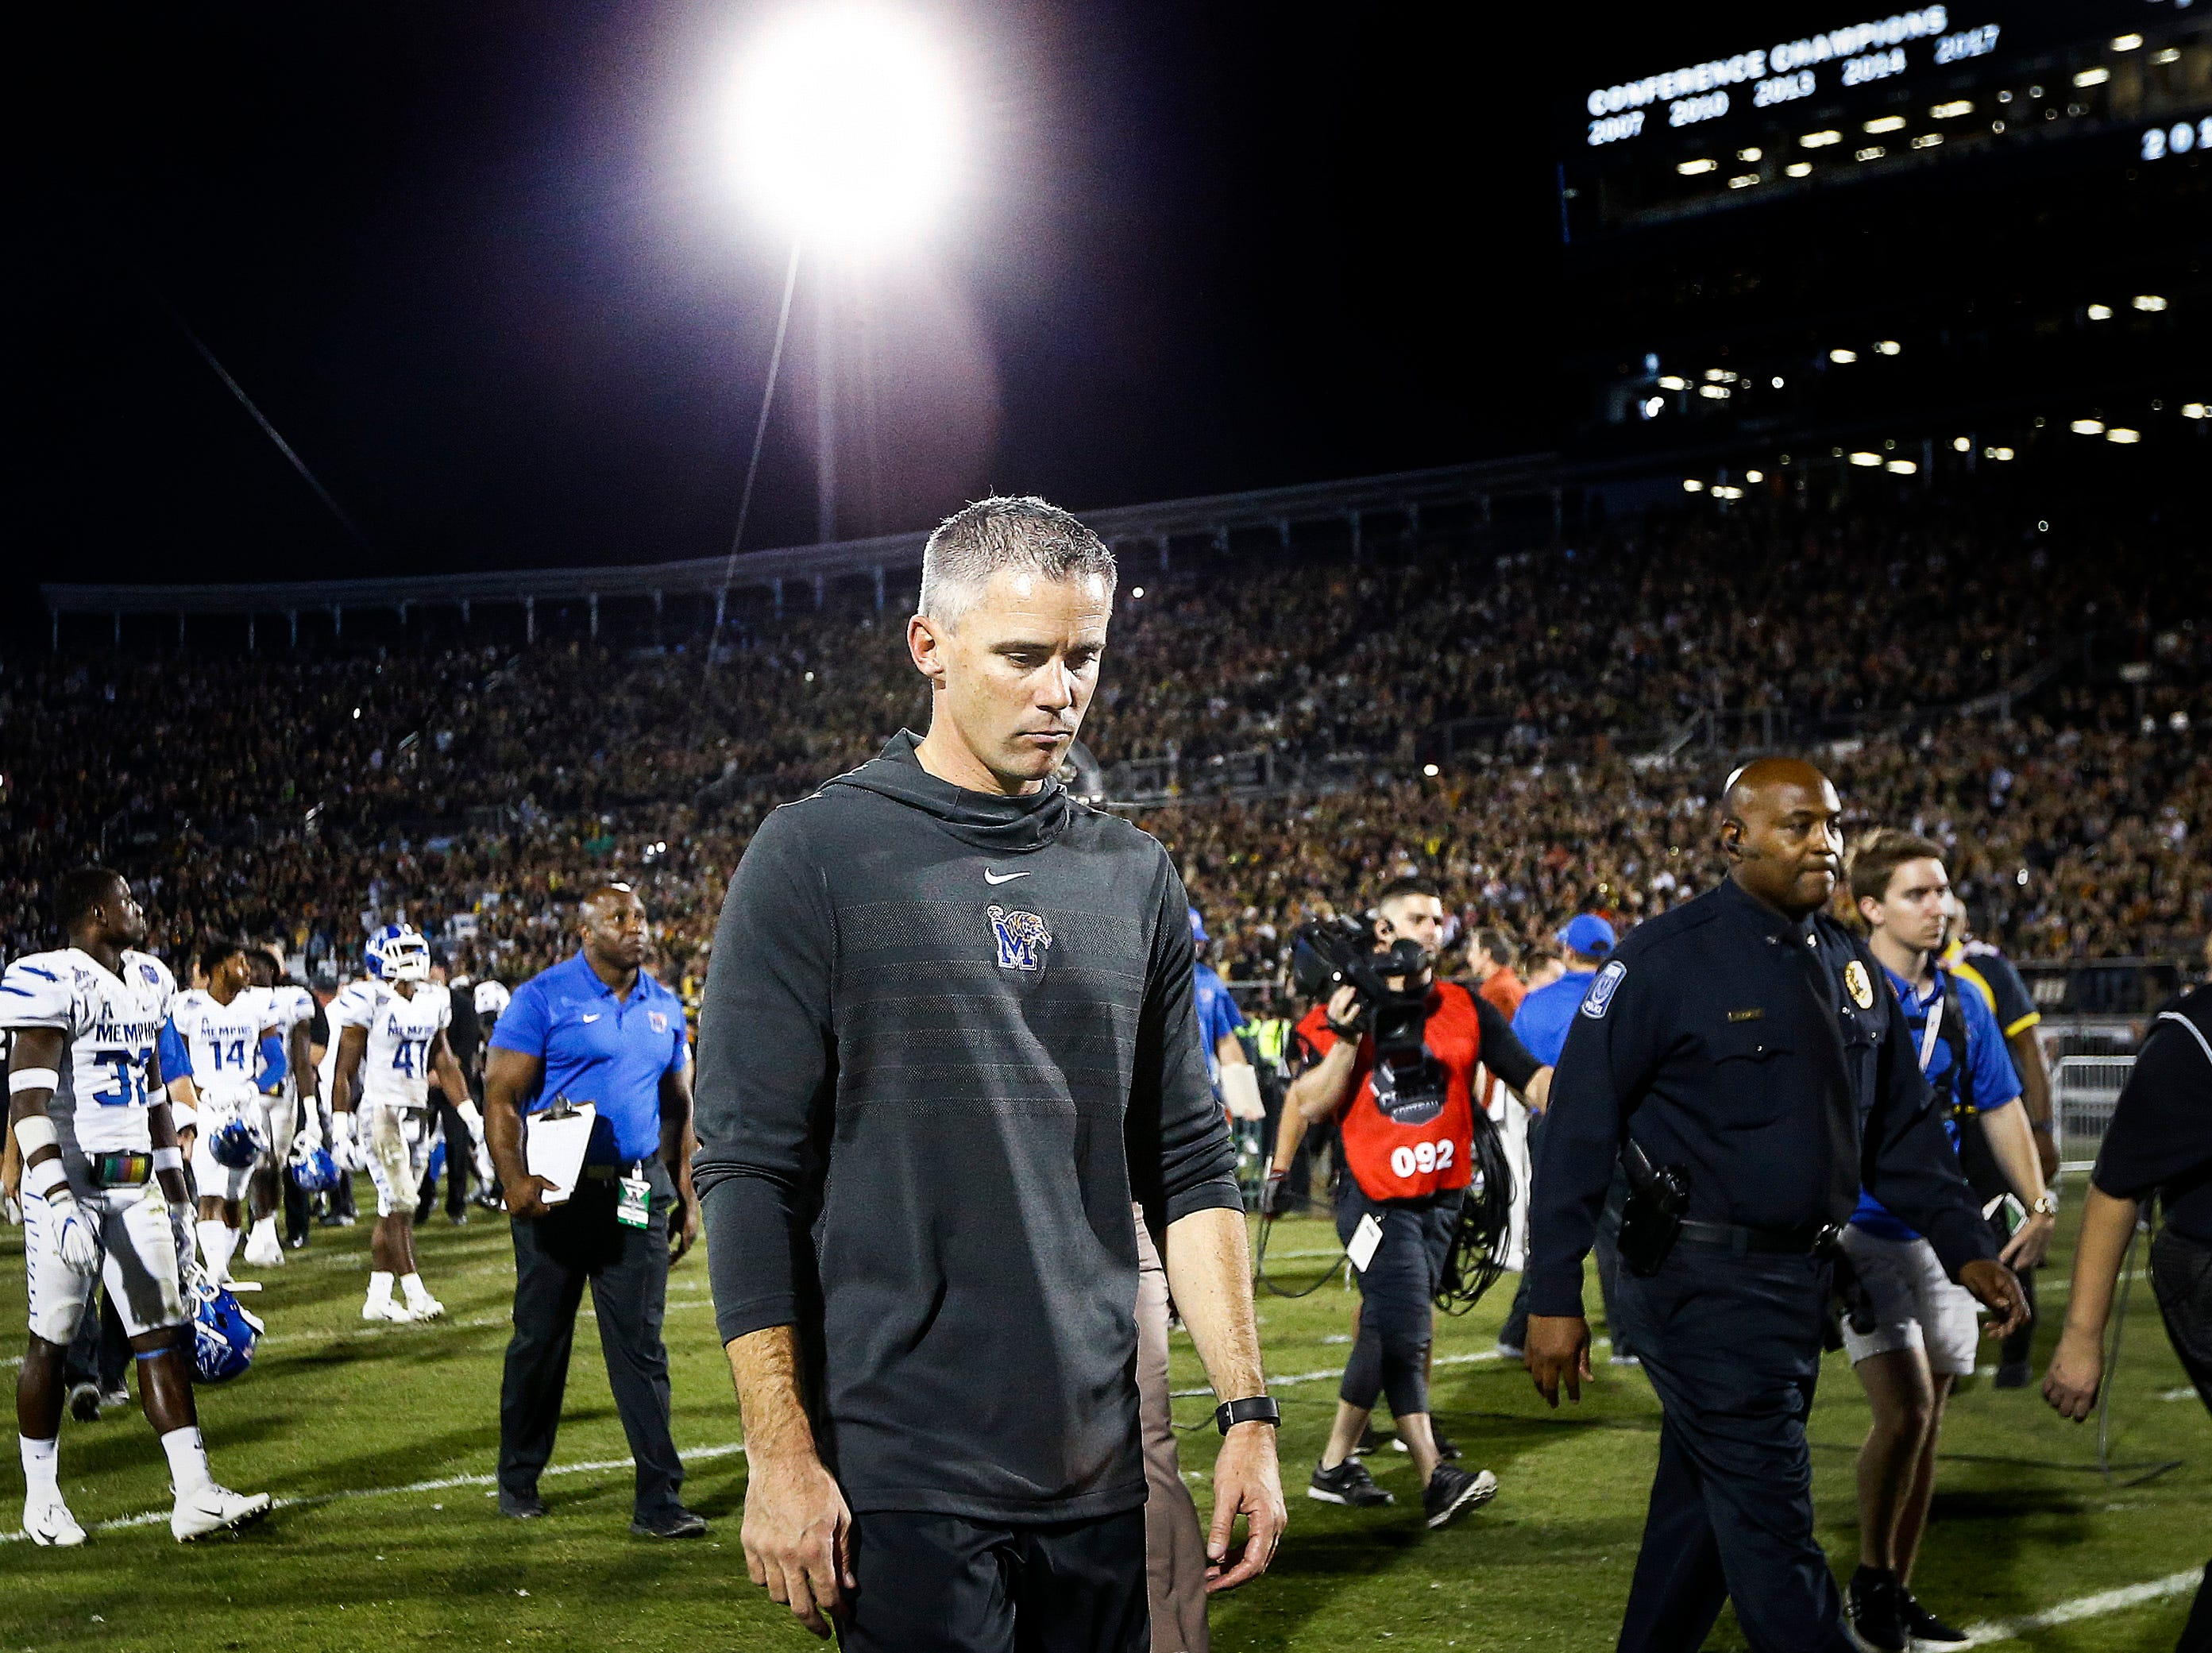 Dejected Memphis head coach Mike Norvell walks off the field after falling to UCF 56-41 in the AAC Championship Football game Saturday, December 1, 2018 in Orlando.